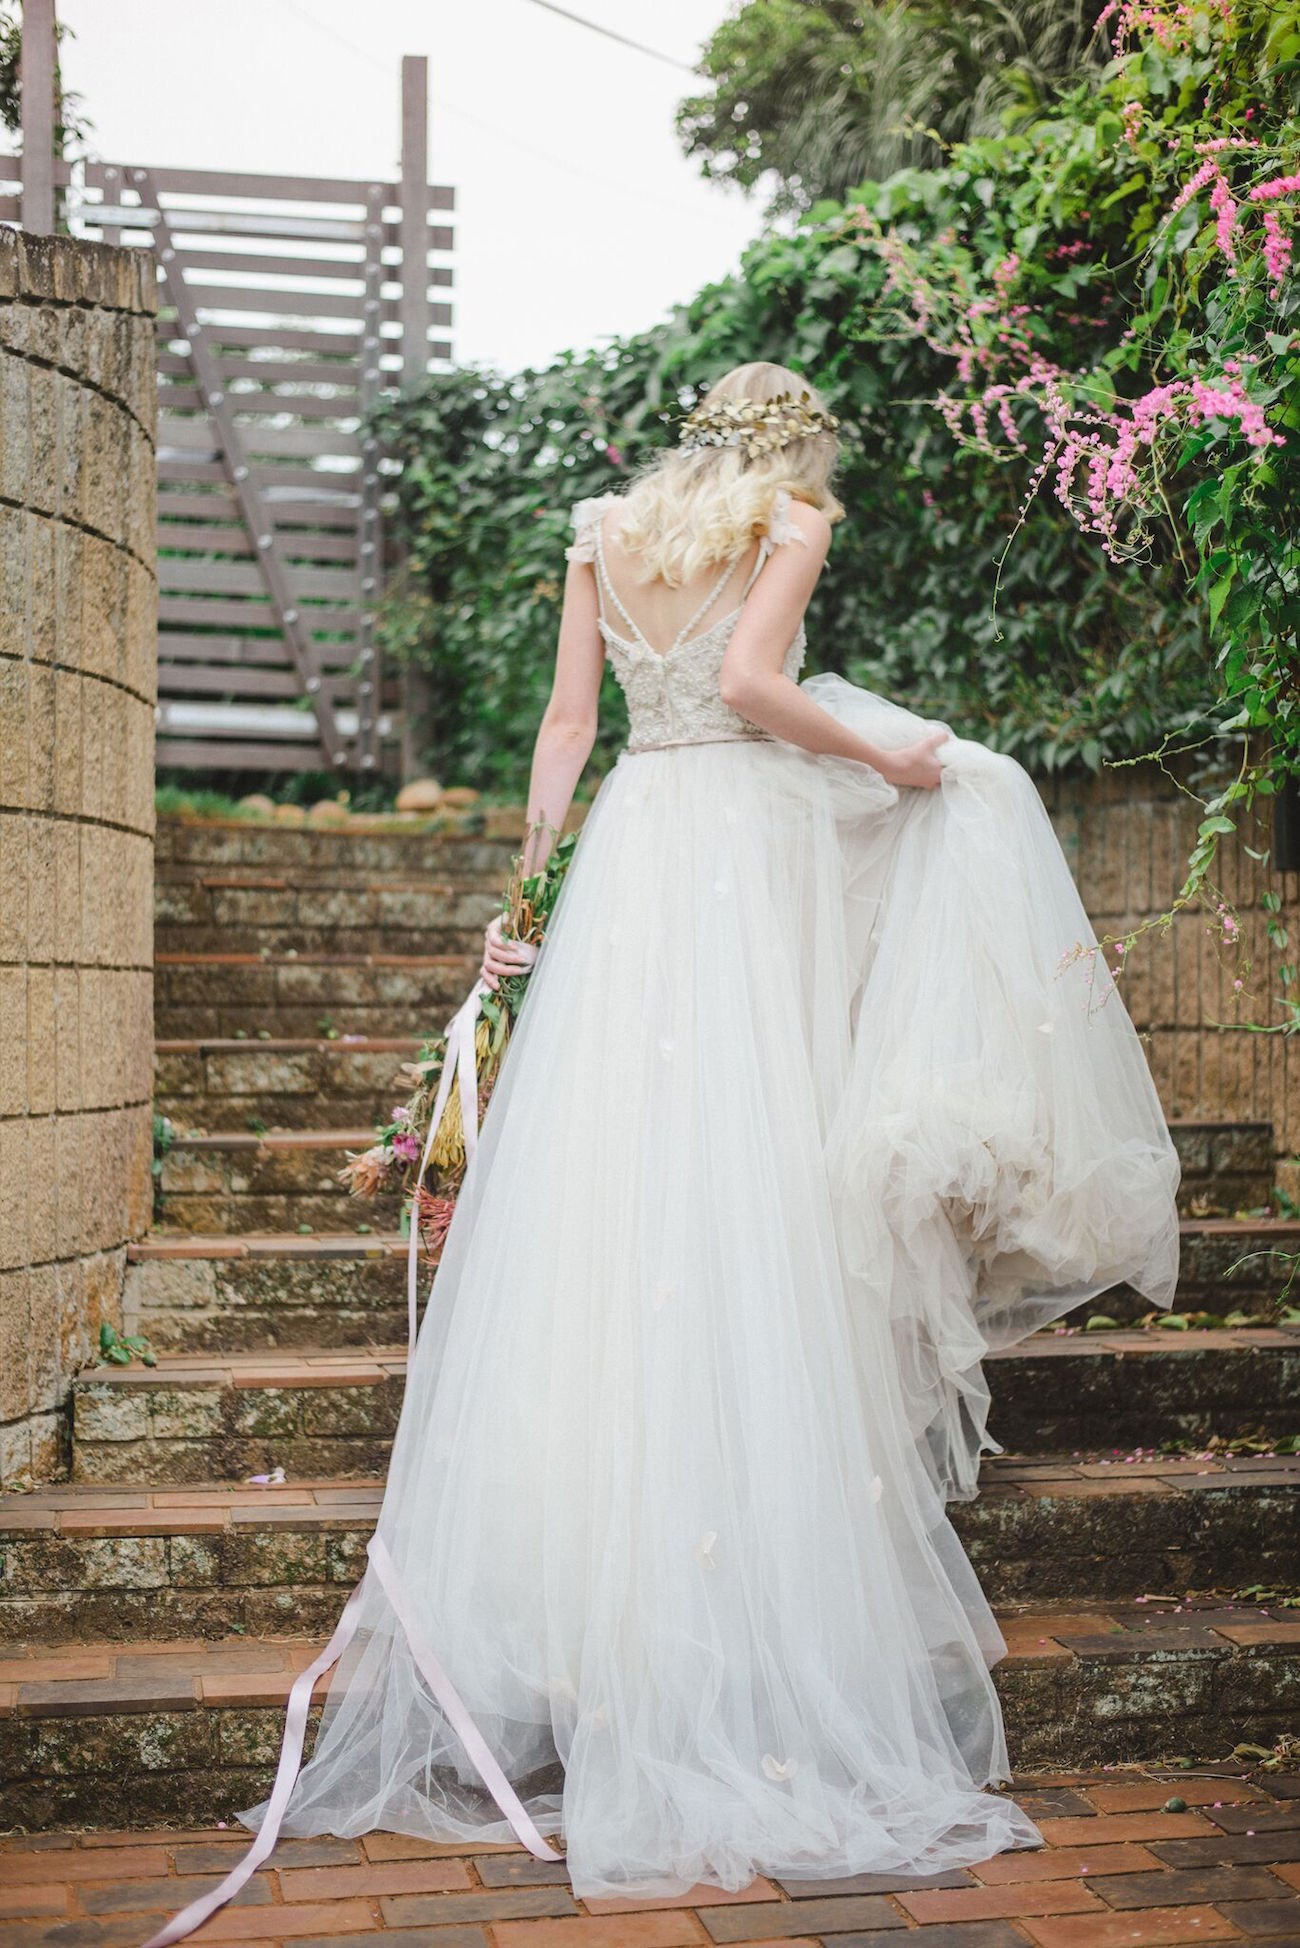 Tulle & Lace Wedding Dress | Credit: Oh Happy Day & Roxanne Davison